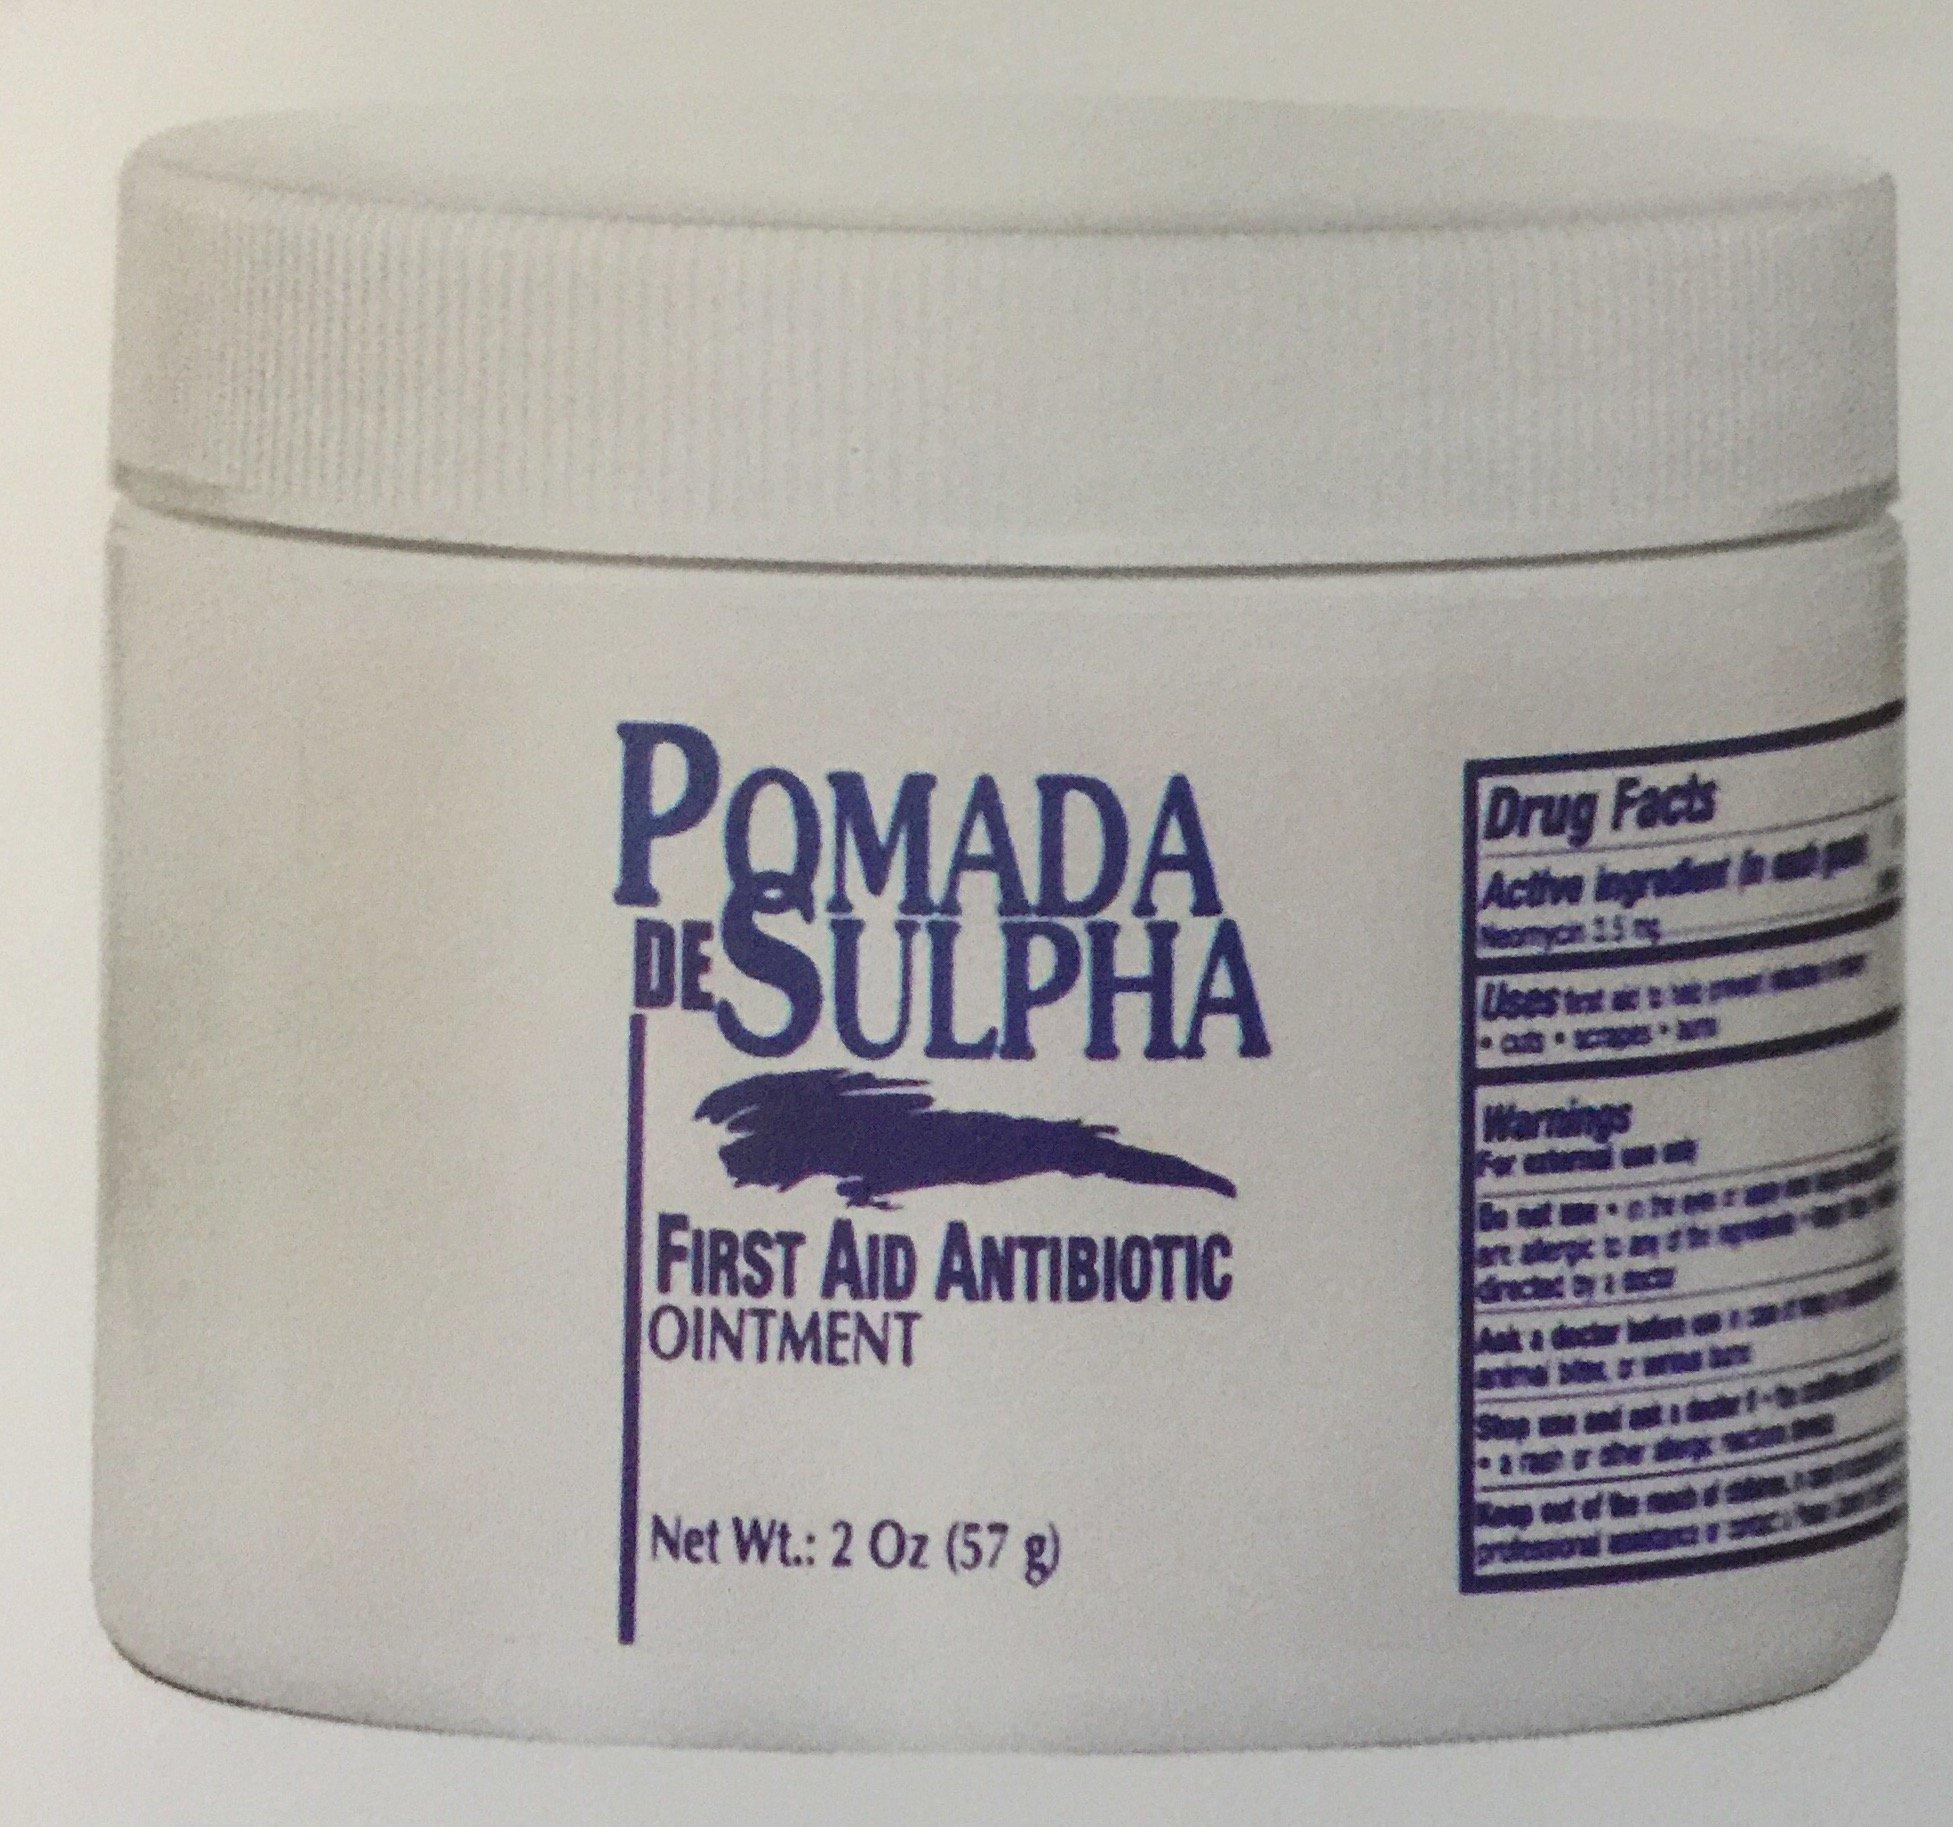 Pomada De Sulpha First Aid Antibiotic Ointment 2 oz.